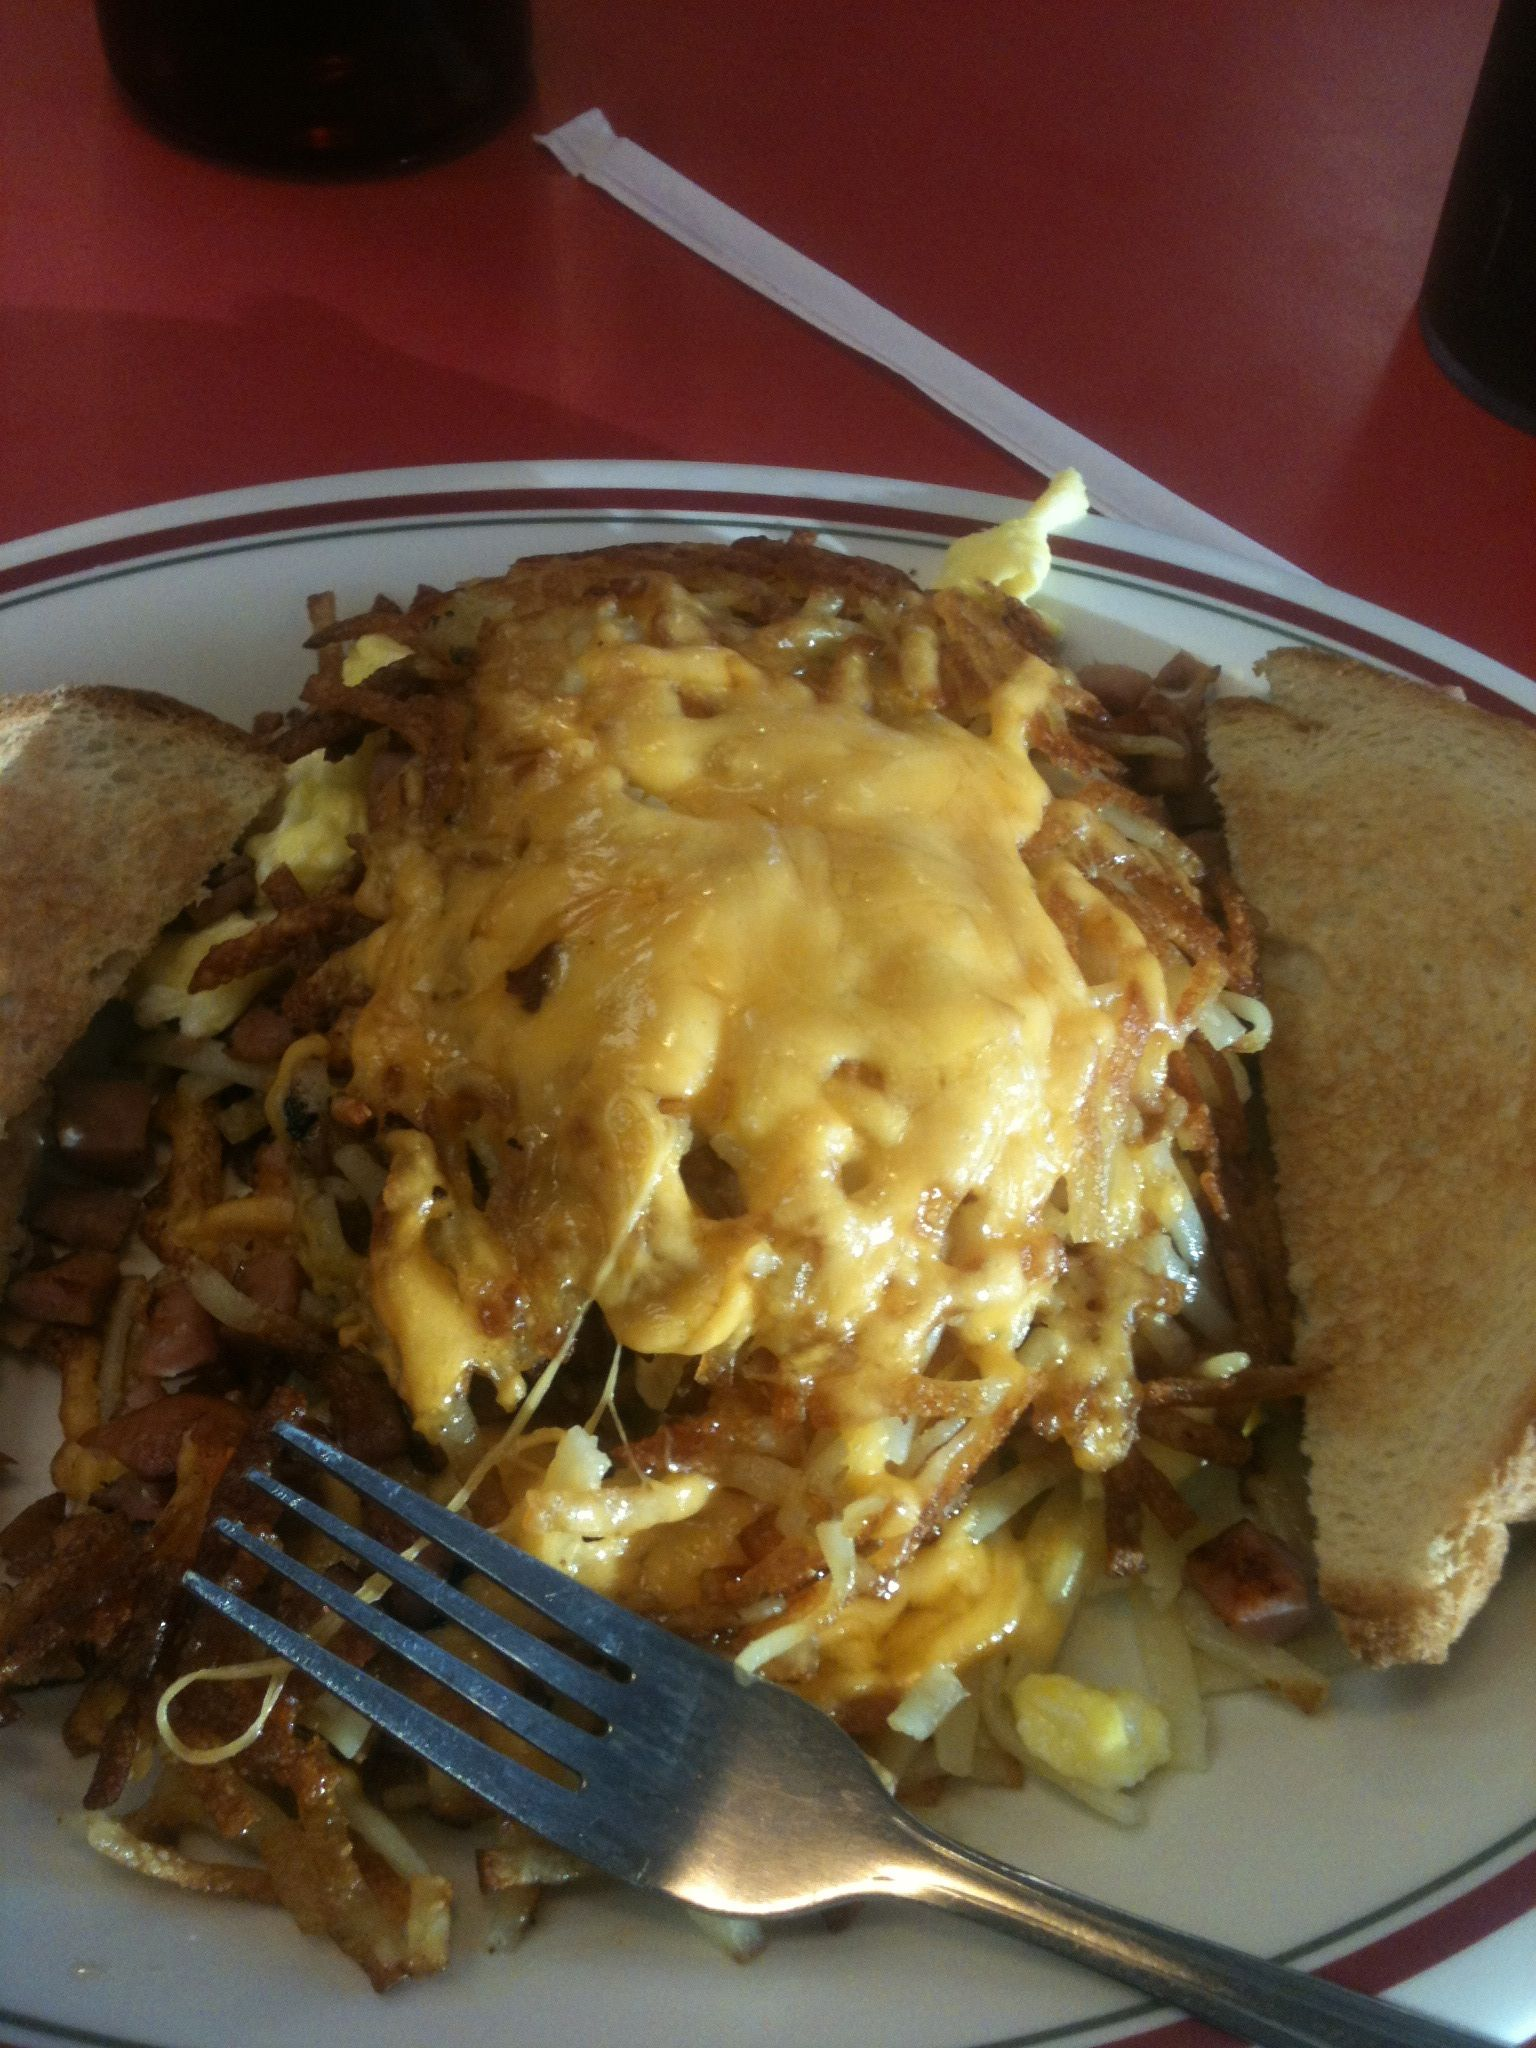 Stuffed hash browns at Huddle House Food Drink